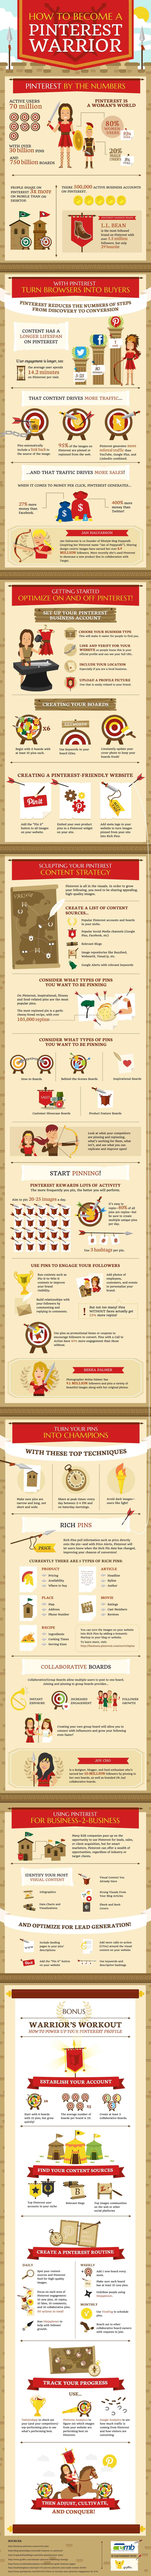 Pinterest as a Marketing Weapon: How to Become a Warrior - Infographic